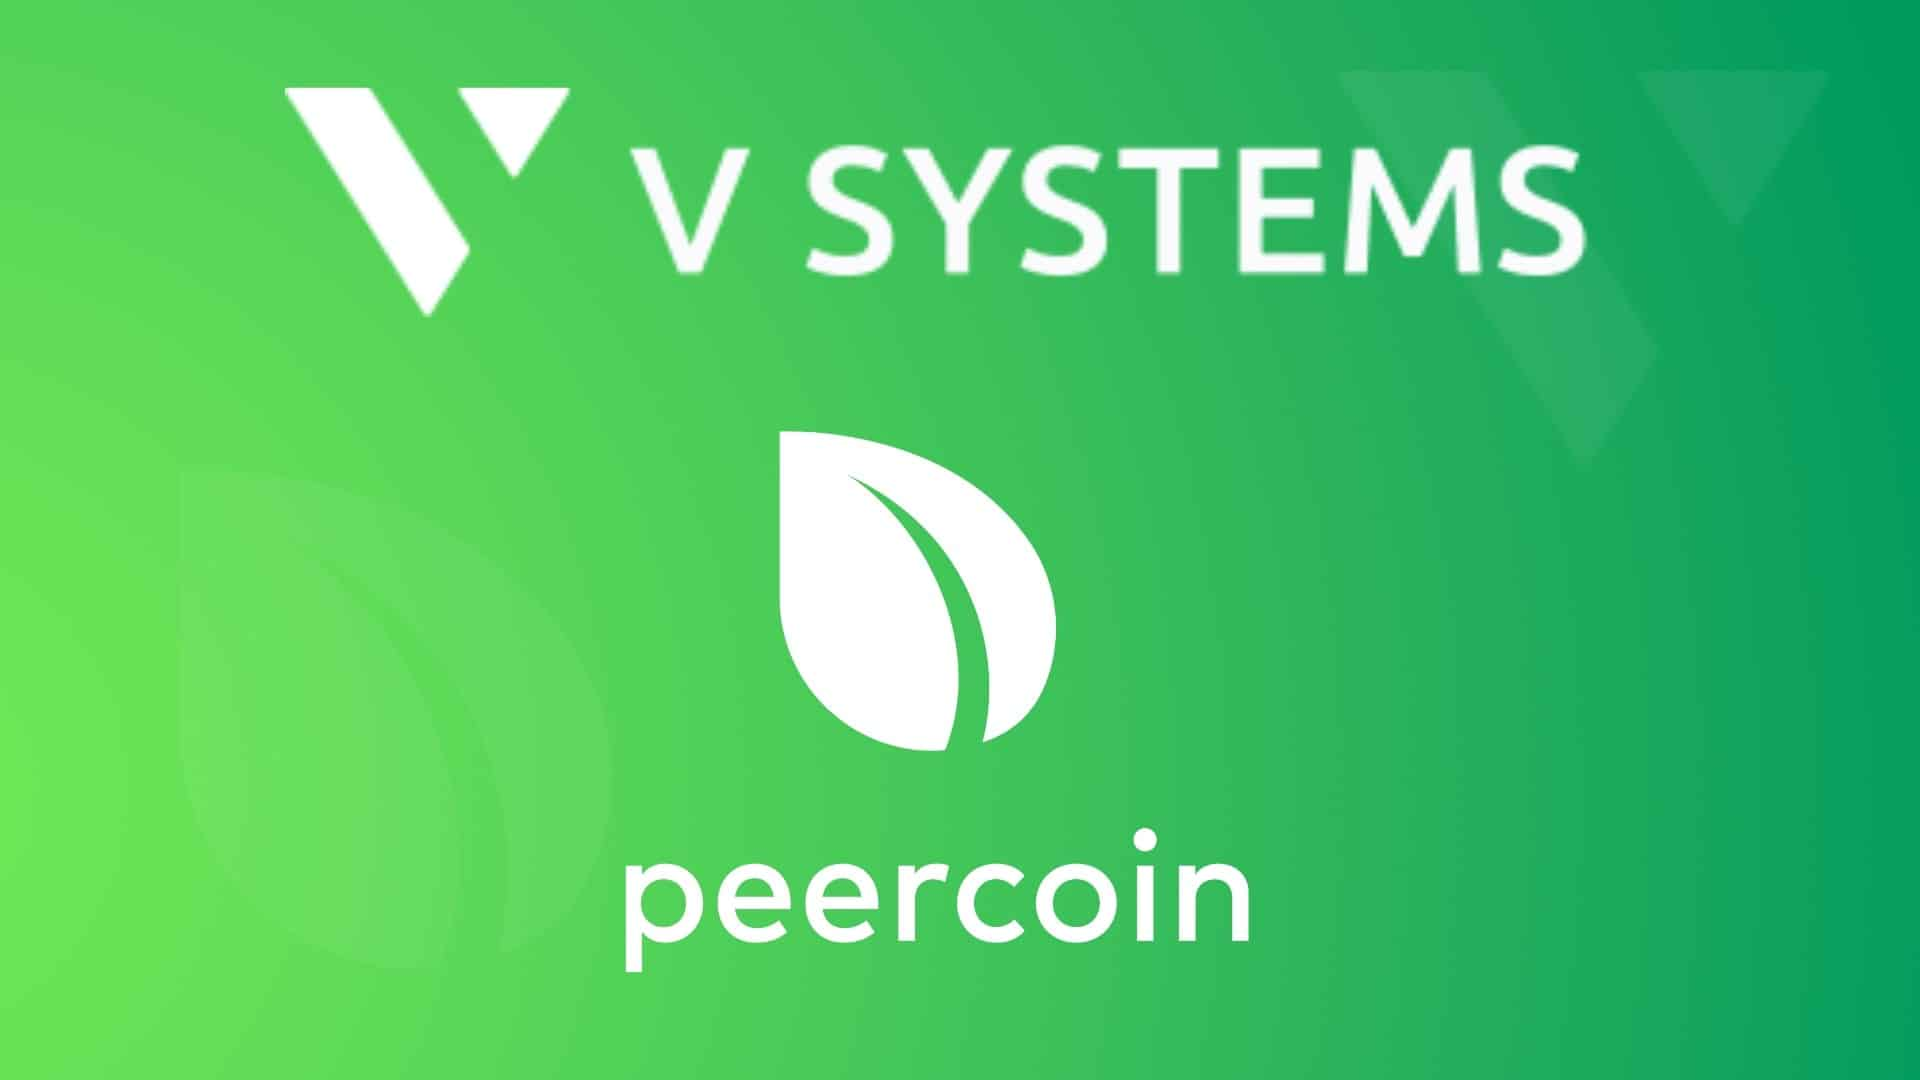 V SYSTEMS Mainnet Launched by Peercoin VPool